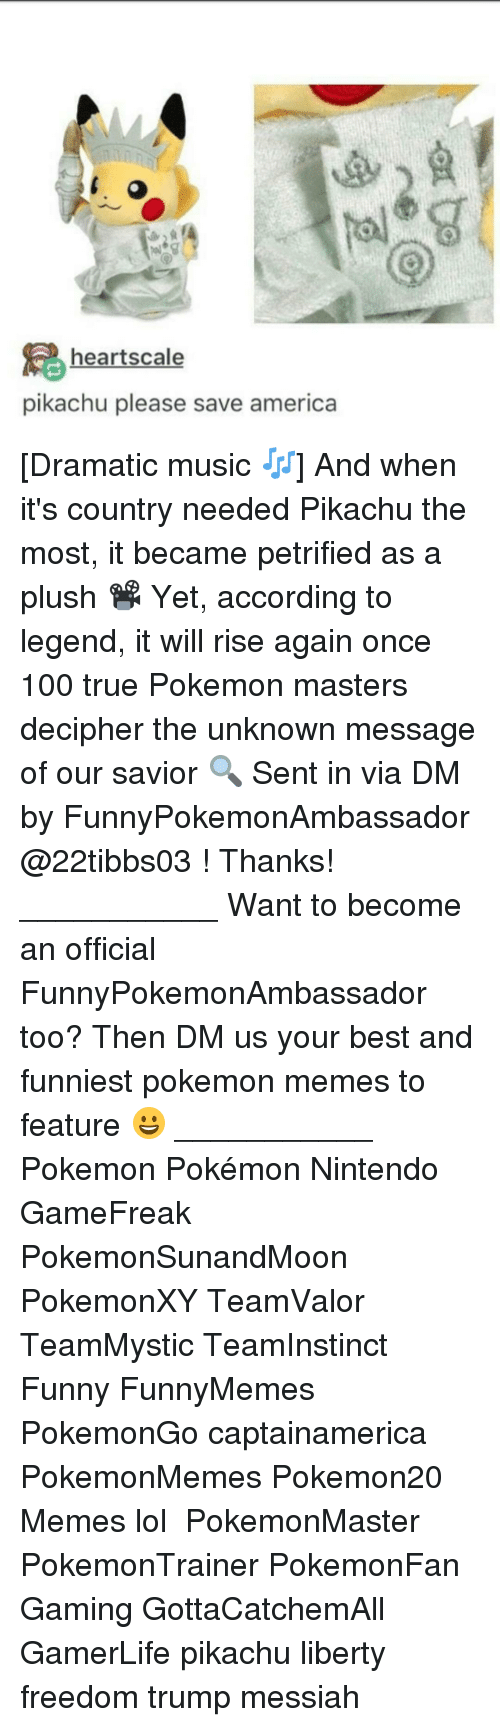 accordance: hearts cale  pikachu please save america [Dramatic music 🎶] And when it's country needed Pikachu the most, it became petrified as a plush 📽 Yet, according to legend, it will rise again once 100 true Pokemon masters decipher the unknown message of our savior 🔍 Sent in via DM by FunnyPokemonAmbassador @22tibbs03 ! Thanks! ___________ Want to become an official FunnyPokemonAmbassador too? Then DM us your best and funniest pokemon memes to feature 😀 ___________ Pokemon Pokémon Nintendo GameFreak PokemonSunandMoon PokemonXY TeamValor TeamMystic TeamInstinct Funny FunnyMemes PokemonGo captainamerica PokemonMemes Pokemon20 Memes lol ポケットモンスター PokemonMaster PokemonTrainer PokemonFan Gaming GottaCatchemAll GamerLife pikachu liberty freedom trump messiah